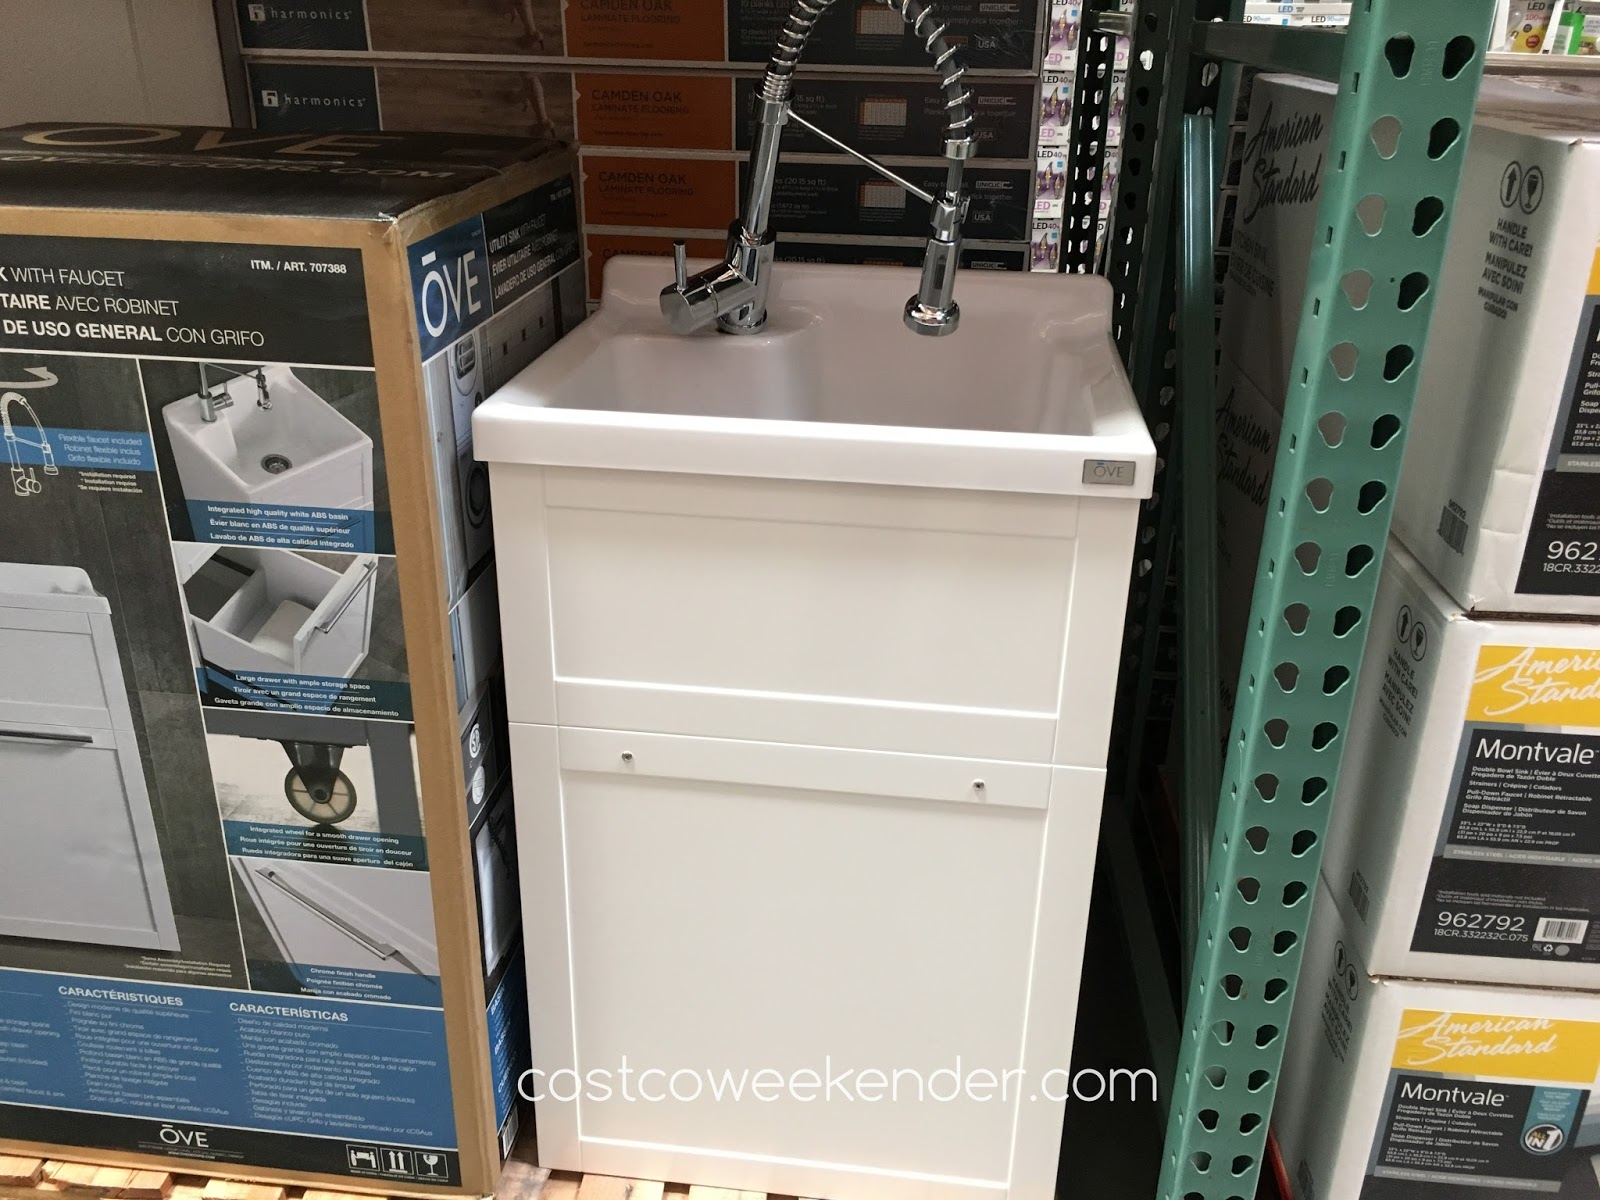 Ove Daisy Utility Sink With Faucet Costco Weekender